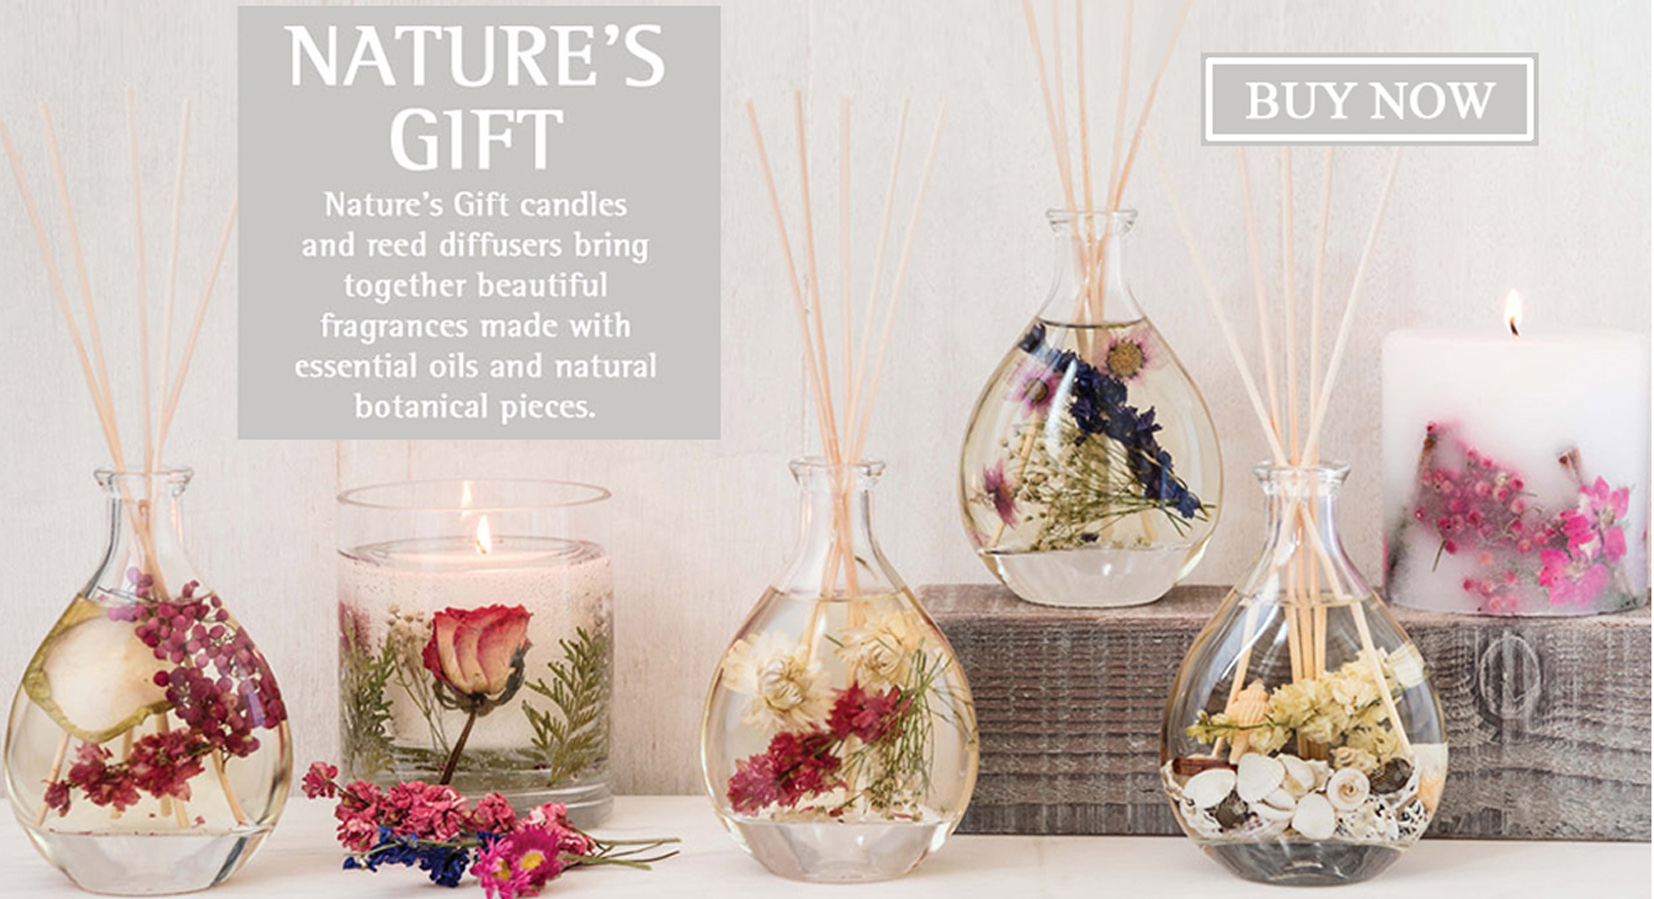 Natuer's Gift scented candles & diffusers